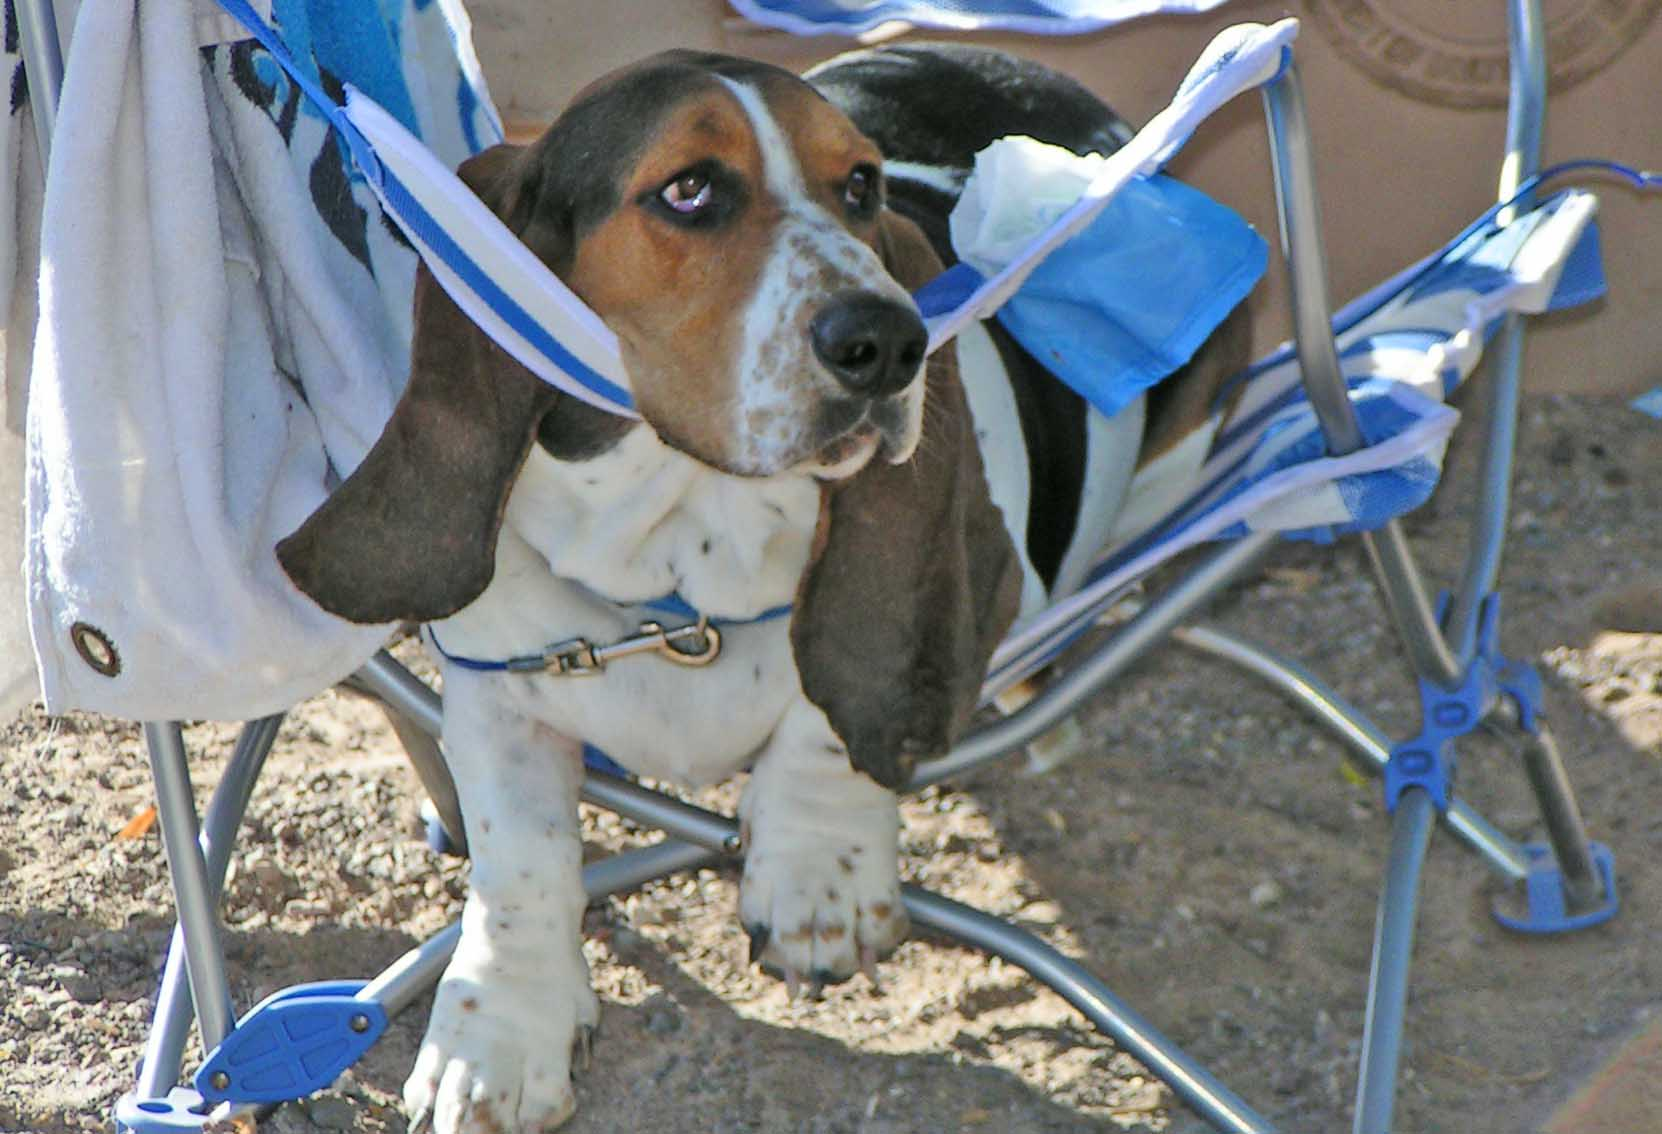 Elvis, son of Howdy - on the first day I adopted him - camping at the Colorado River. On lawn chairs,he was a natural. On a surfboard- not so much. But he learned from the best - Howdy was king of Dog Beach.  Photo (c) Barb Ayers, DogDiary.org